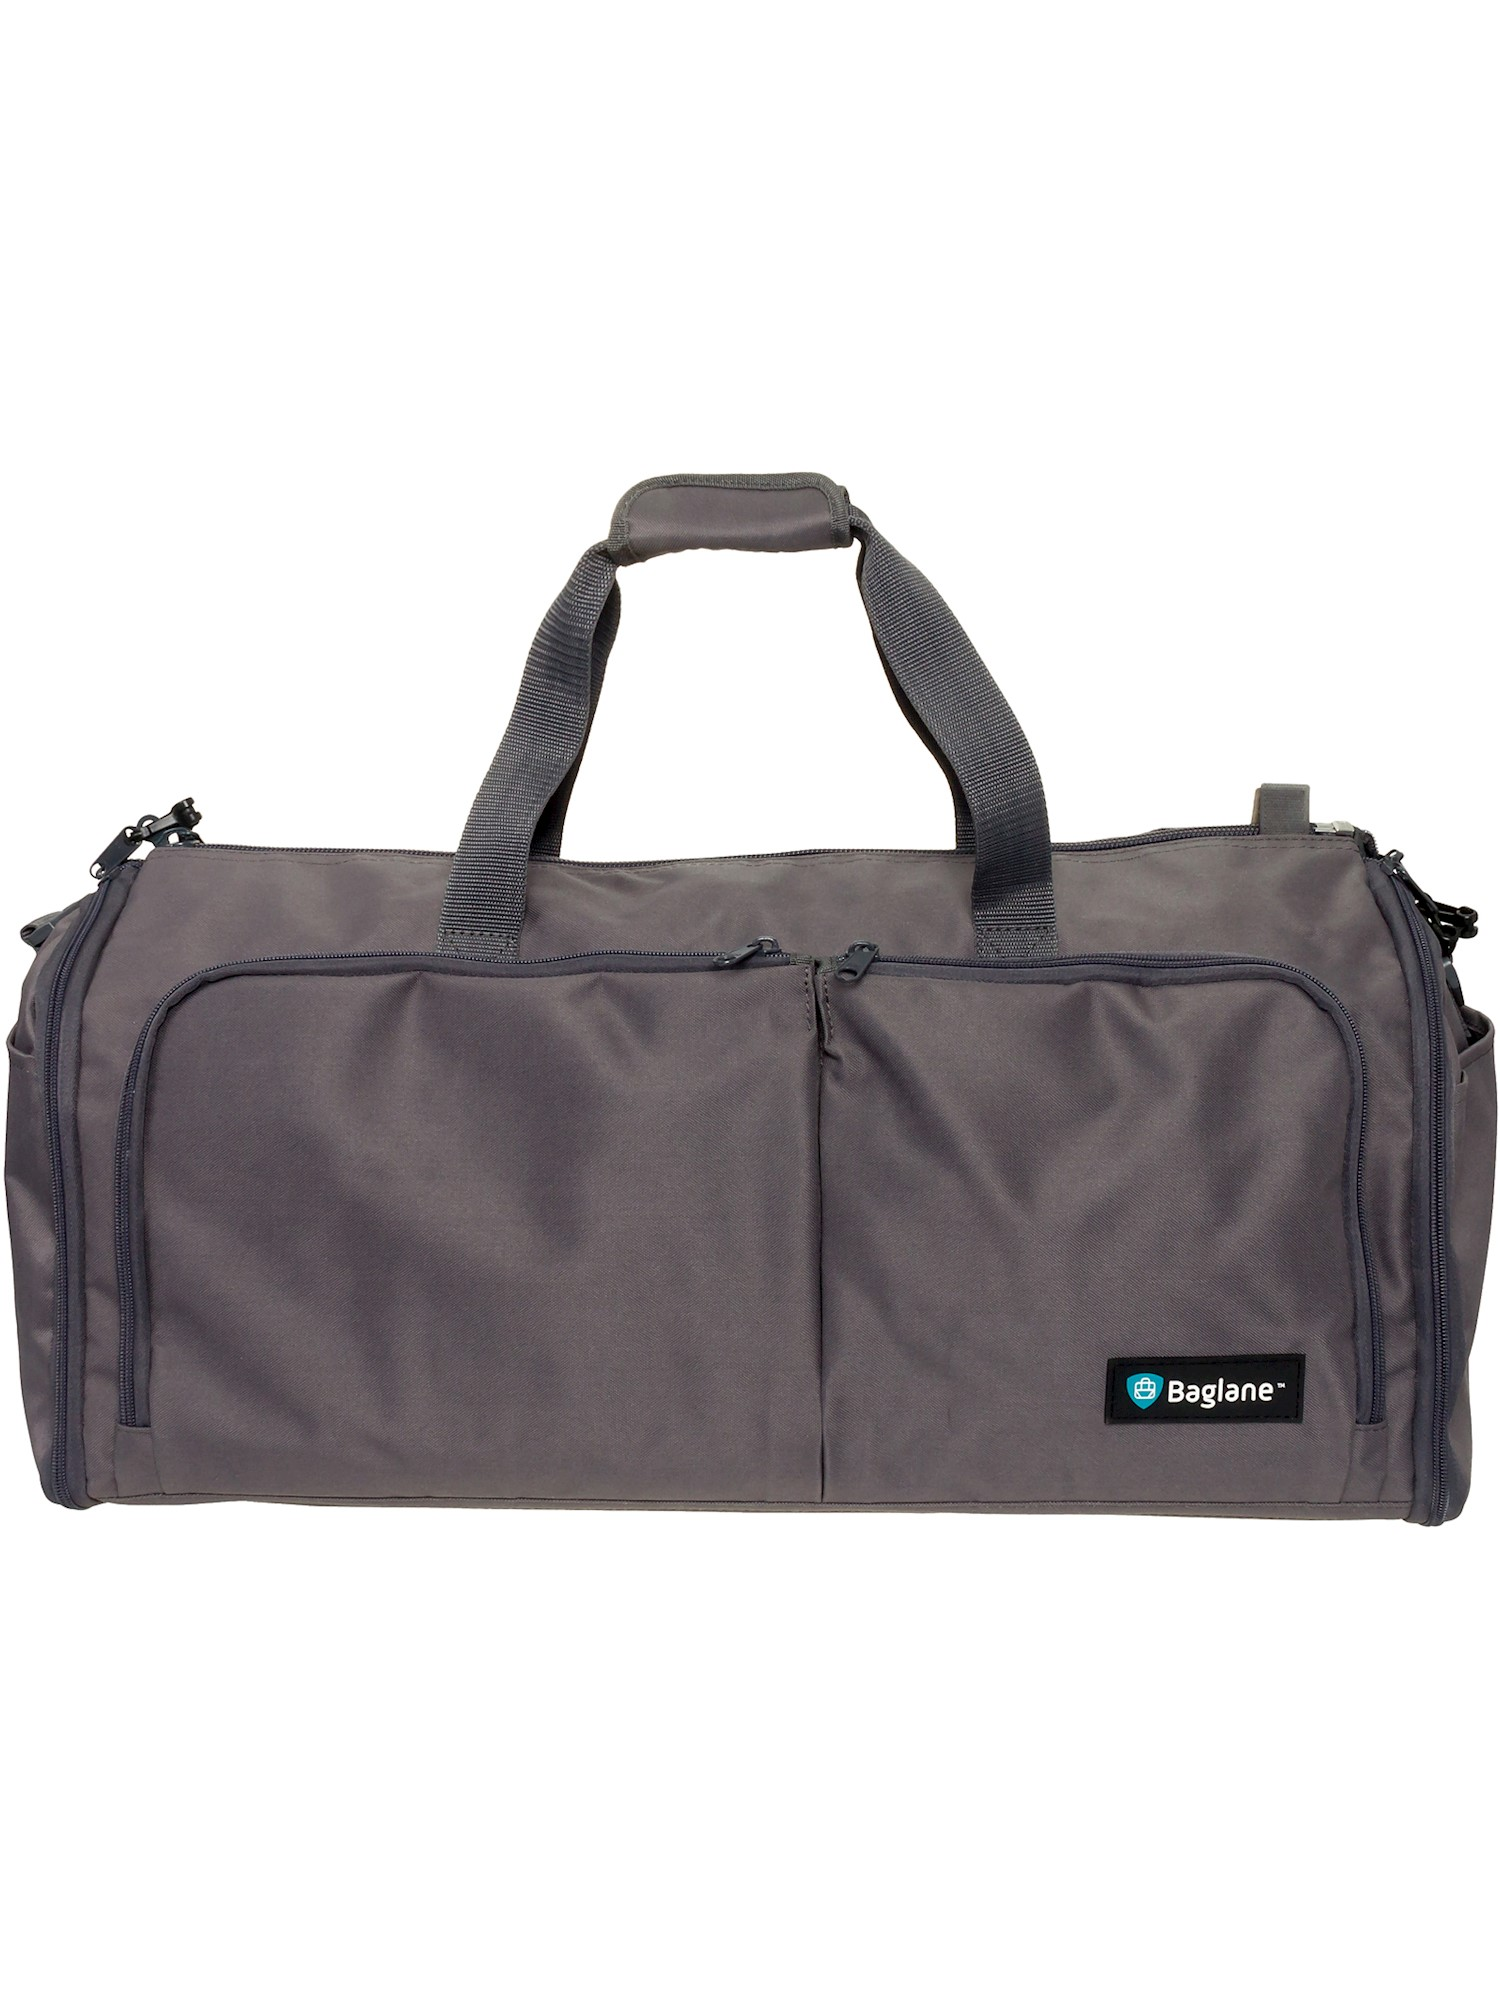 Military Garment Bag NEW Men/'s Carry-On Suit Combination Travel Bag by Baglane